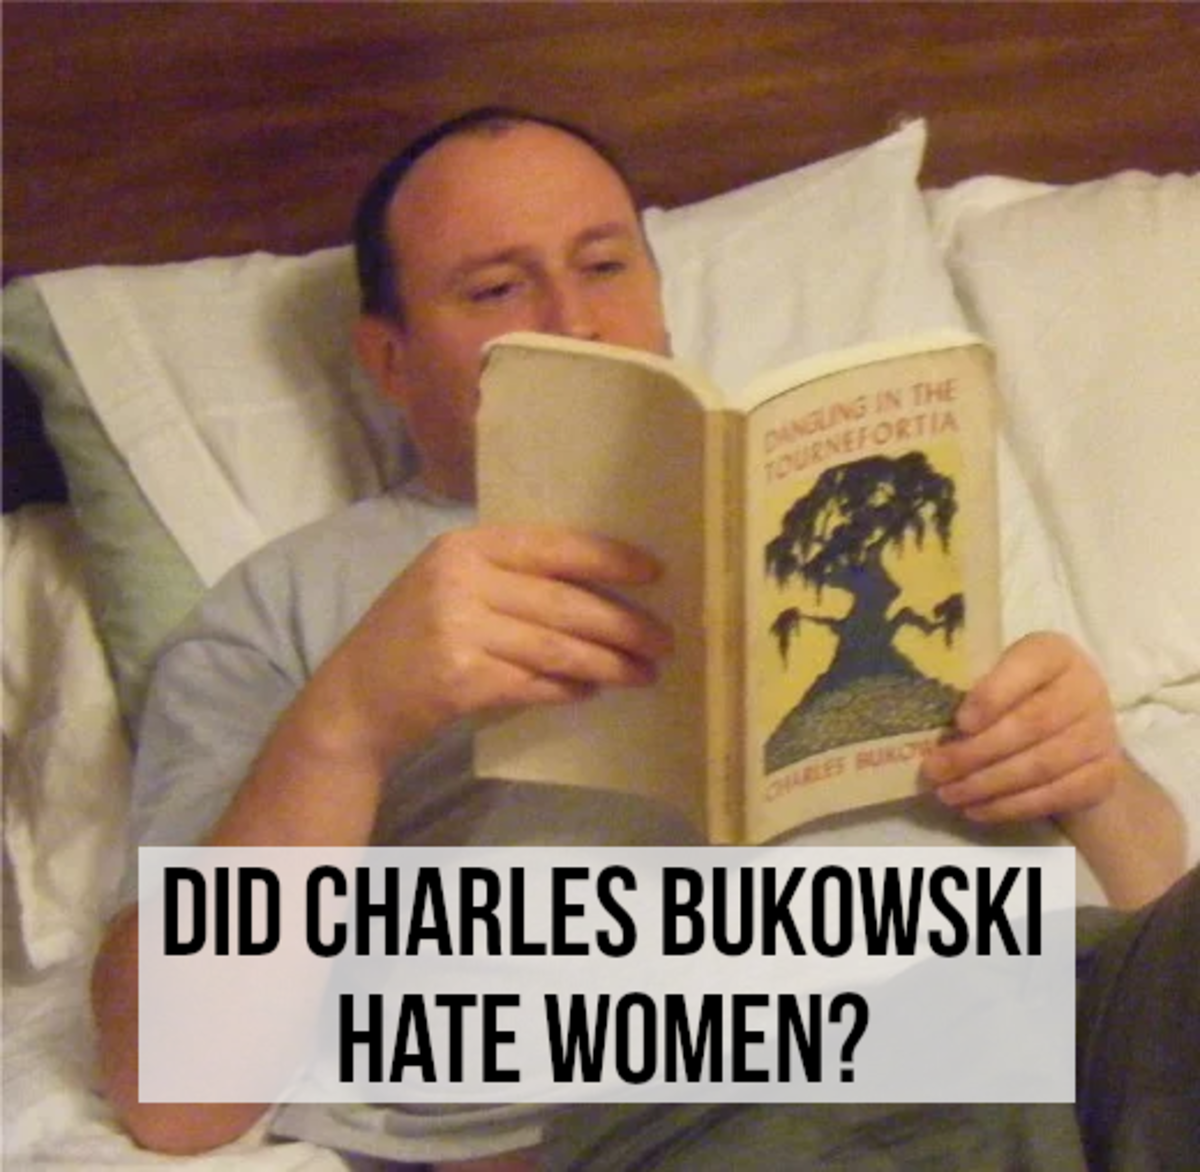 Did Charles Bukowski Hate Women?